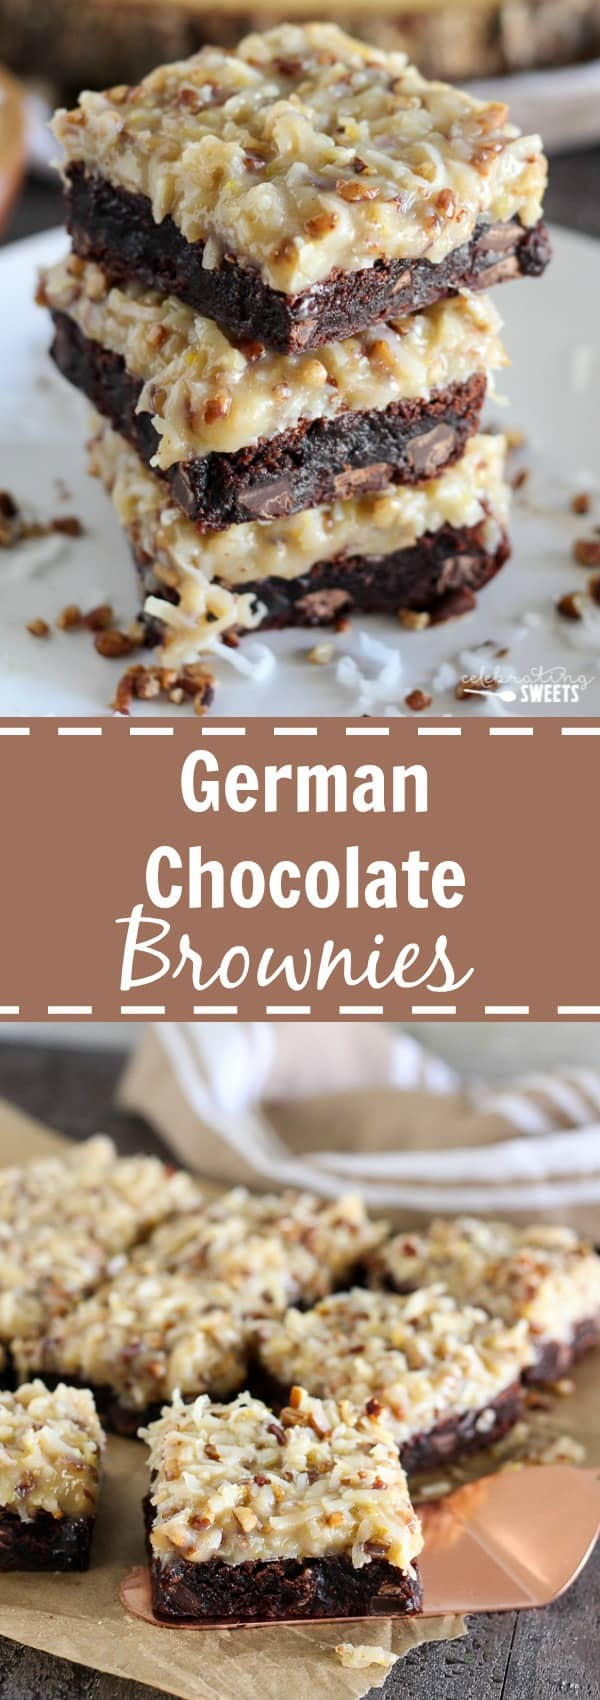 German Chocolate Brownies - Rich chocolaty brownies topped with a ...